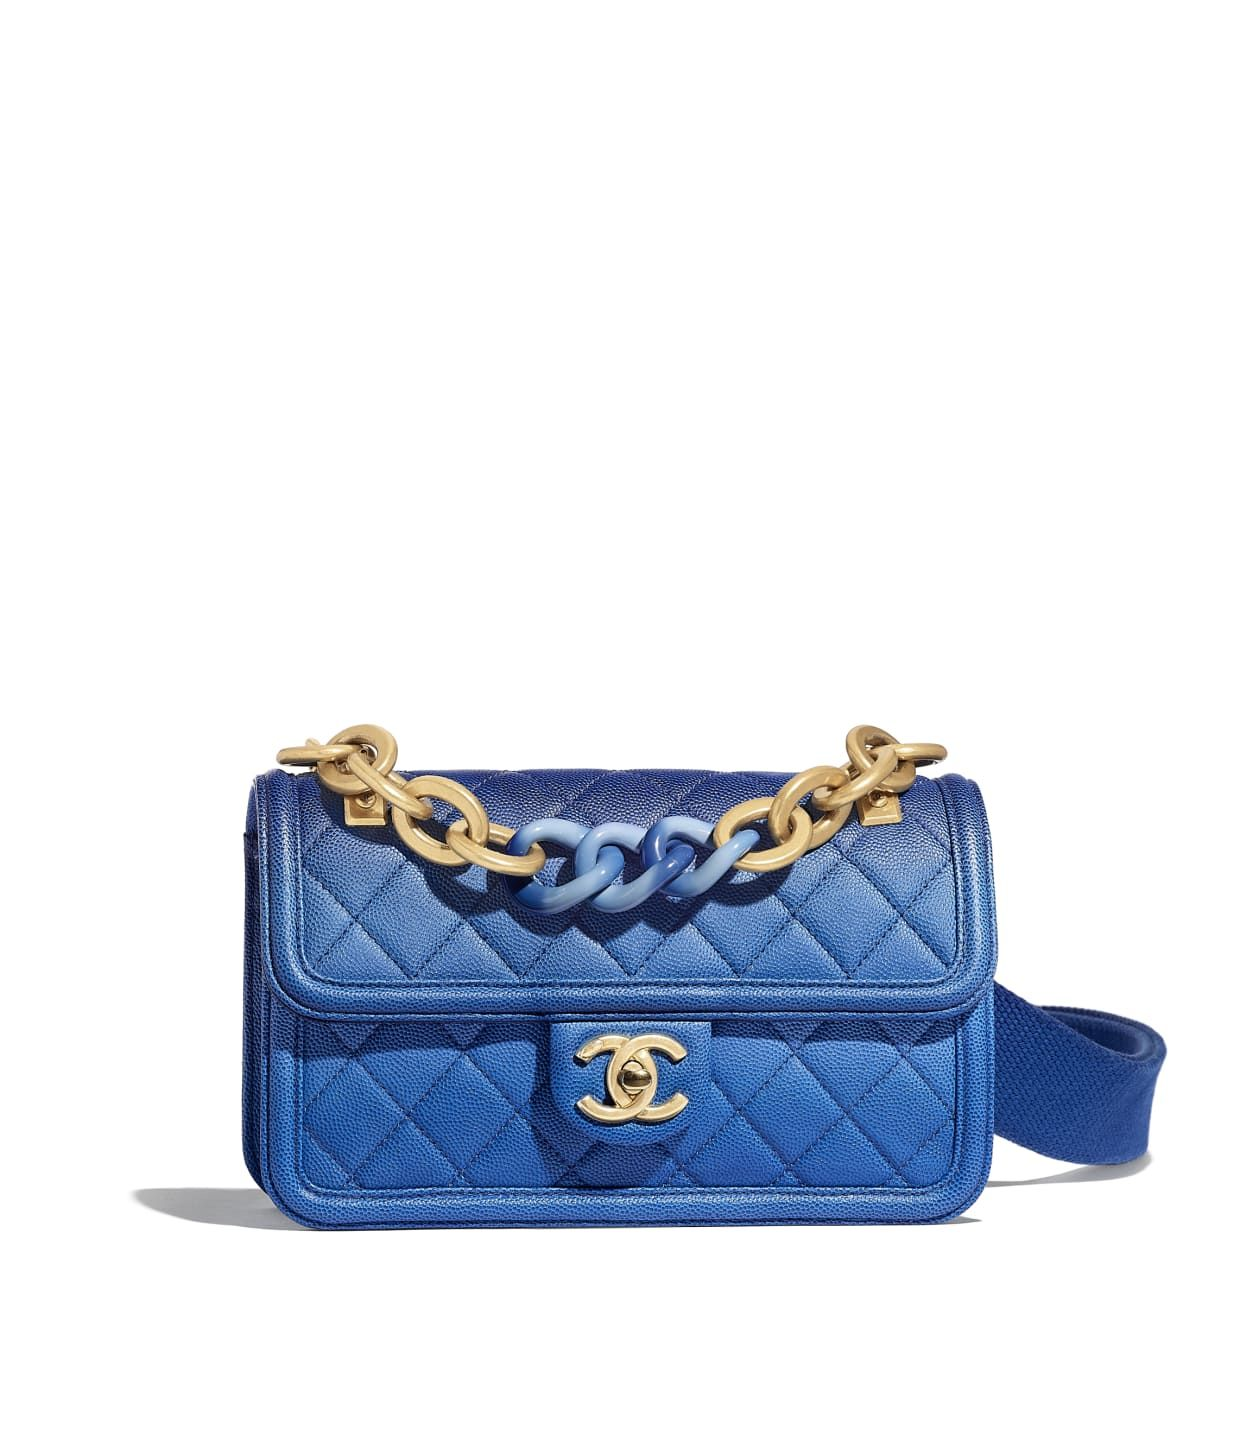 70fe4c1e292526 Discover the CHANEL Grained Calfskin, Resin & Gold-Tone Metal Blue Flap Bag,  and explore the artistry and craftsmanship of the House of CHANEL.